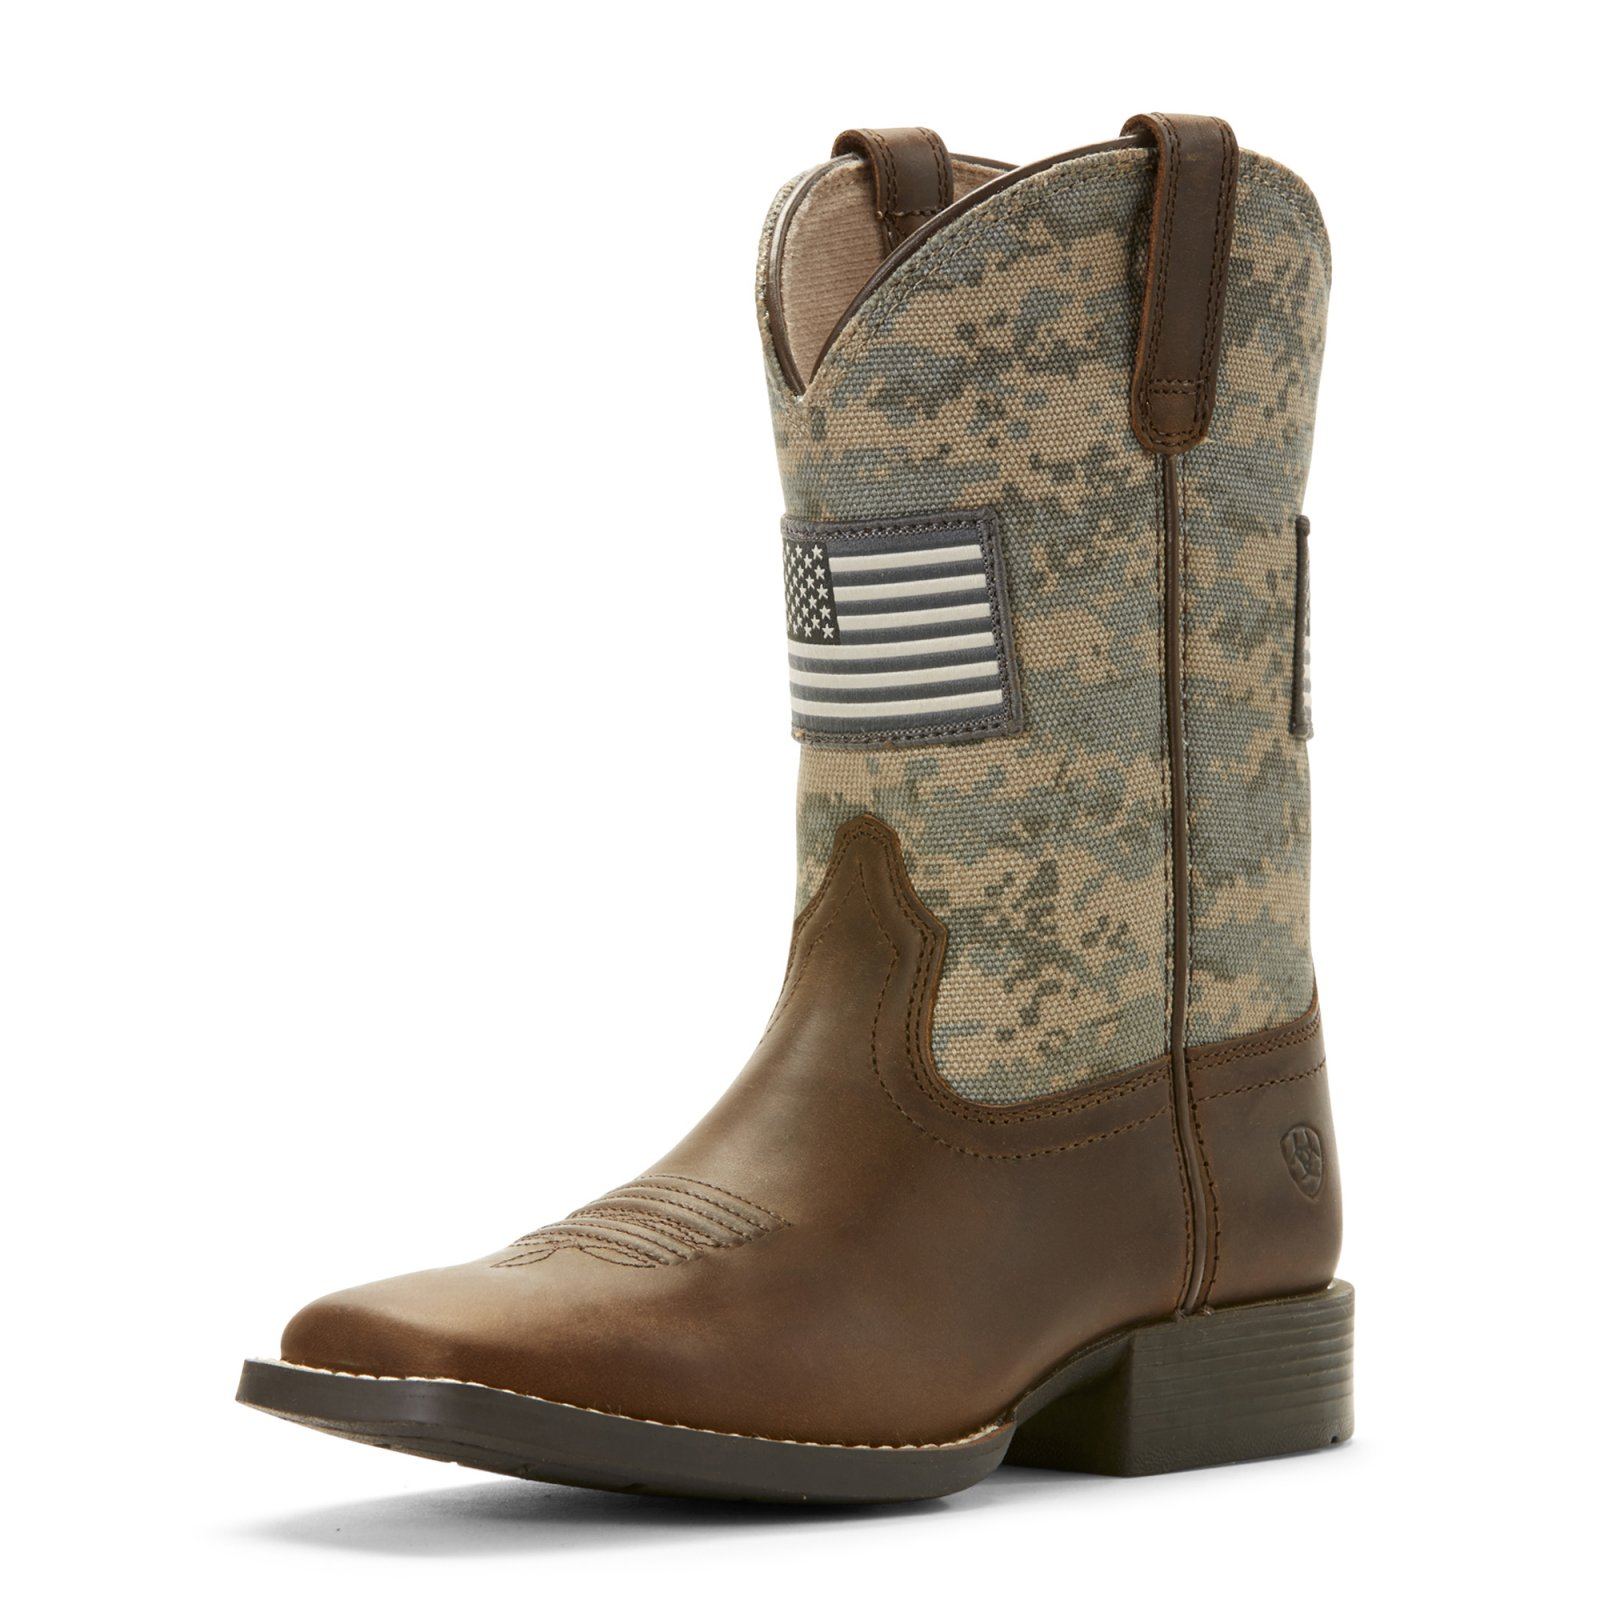 Kids Patriot Square Toe Boot from Ariat